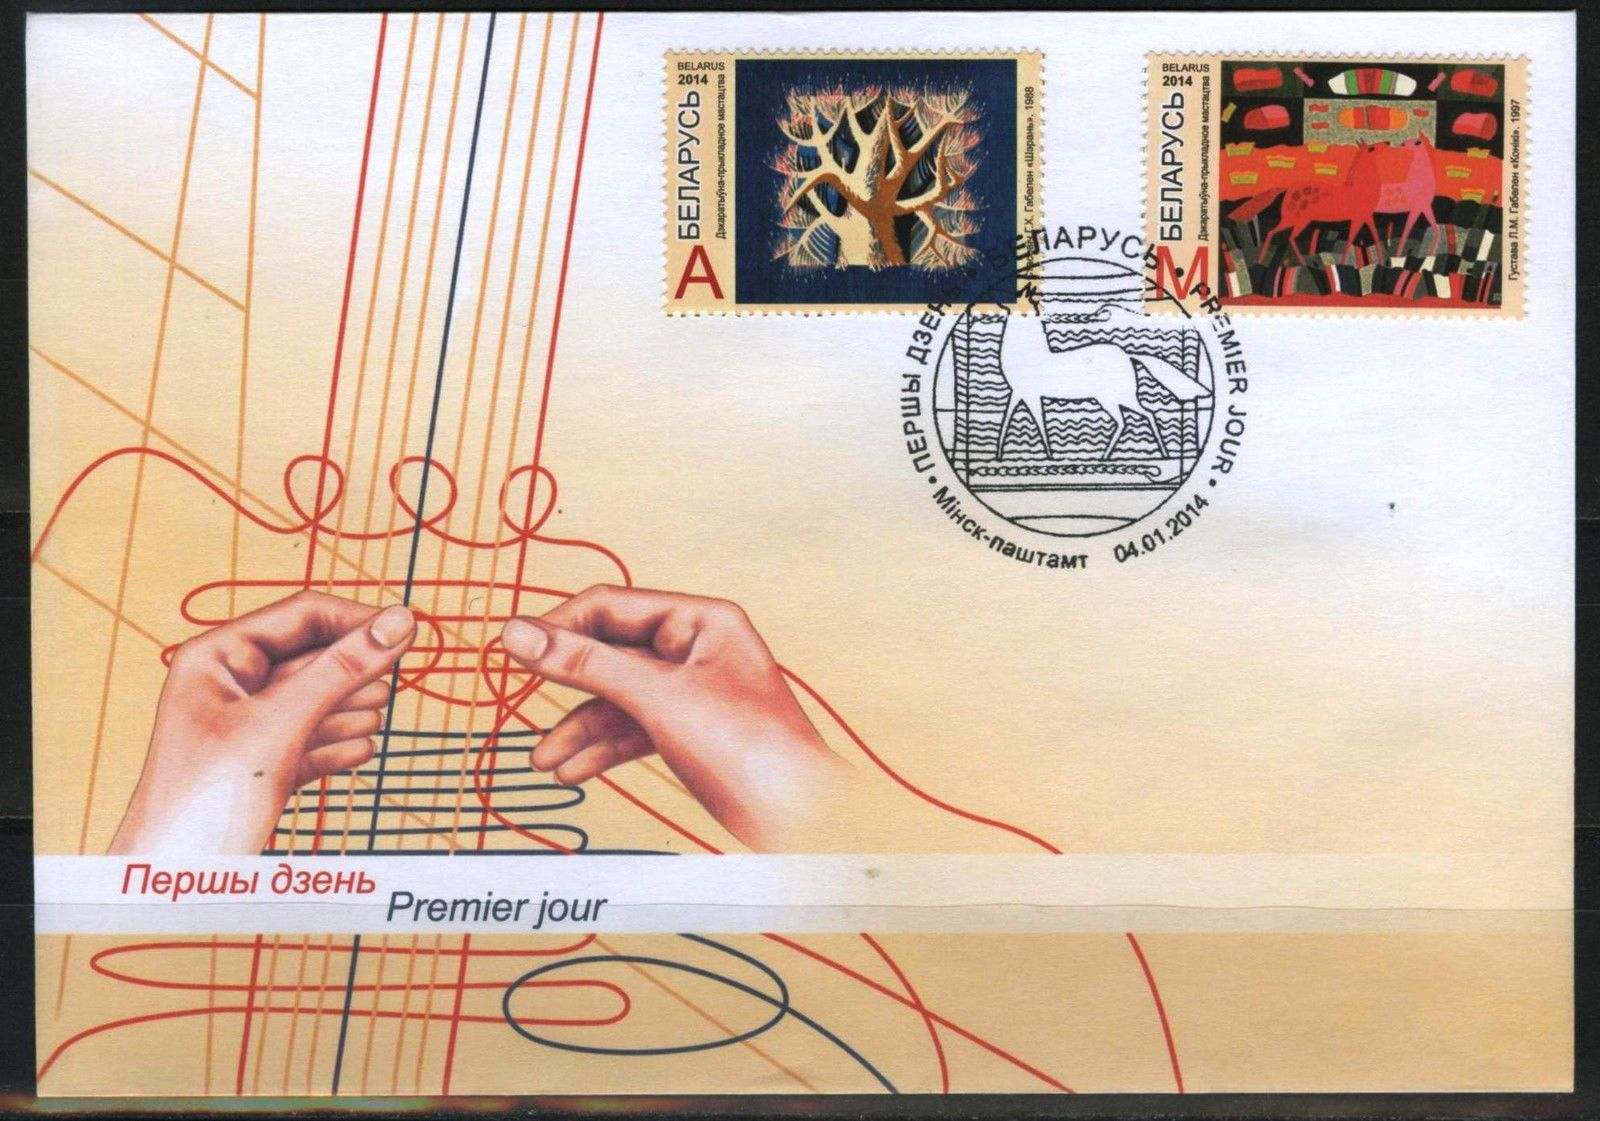 Belarus - Scott #885-886 (2014) first day cover [NIMC2018] - image sourced from active eBay auction